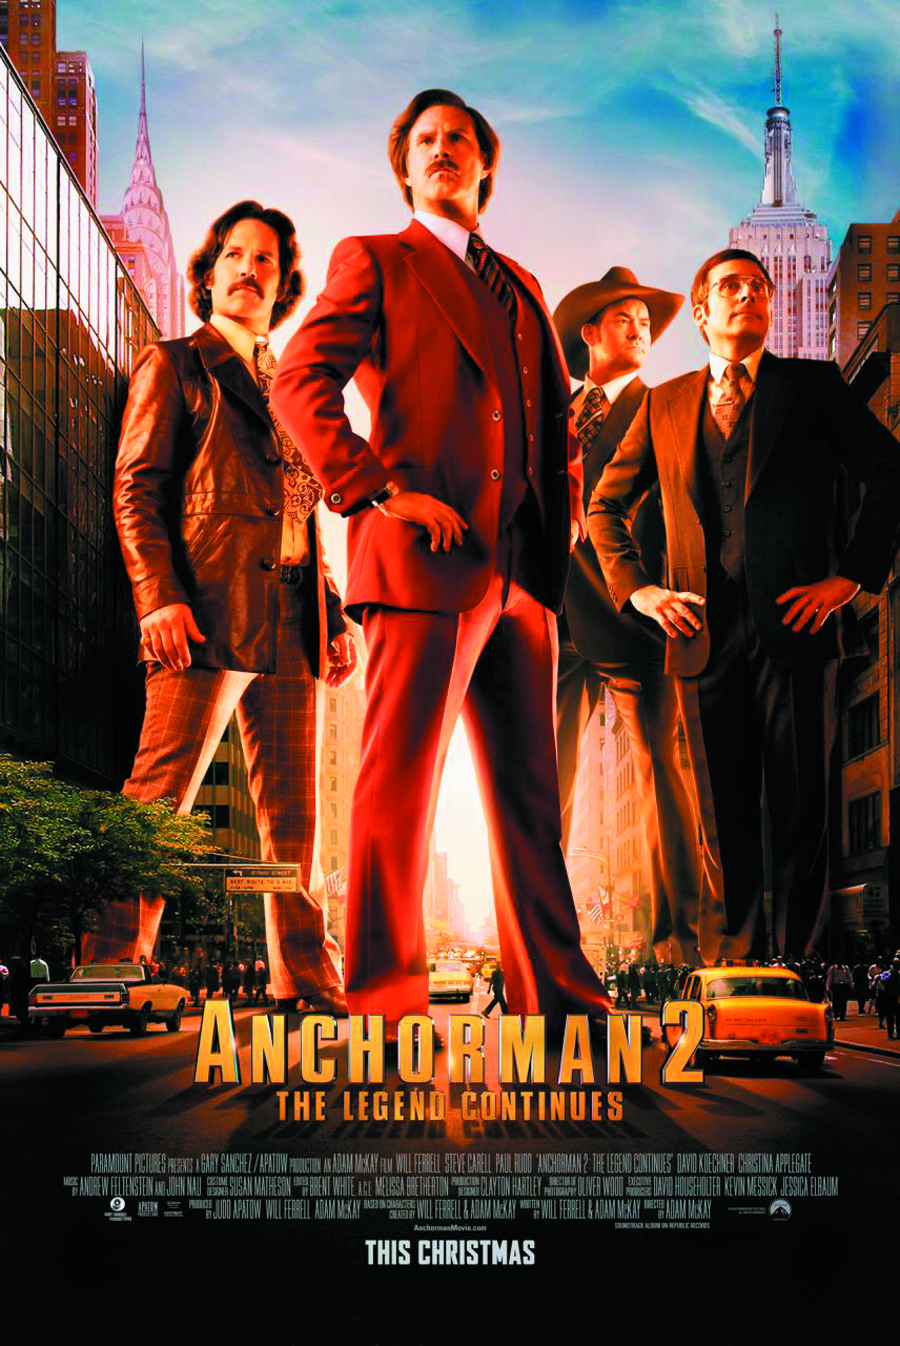 ANCHORMAN 2 THE LEGEND CONTINUES BD + DVD